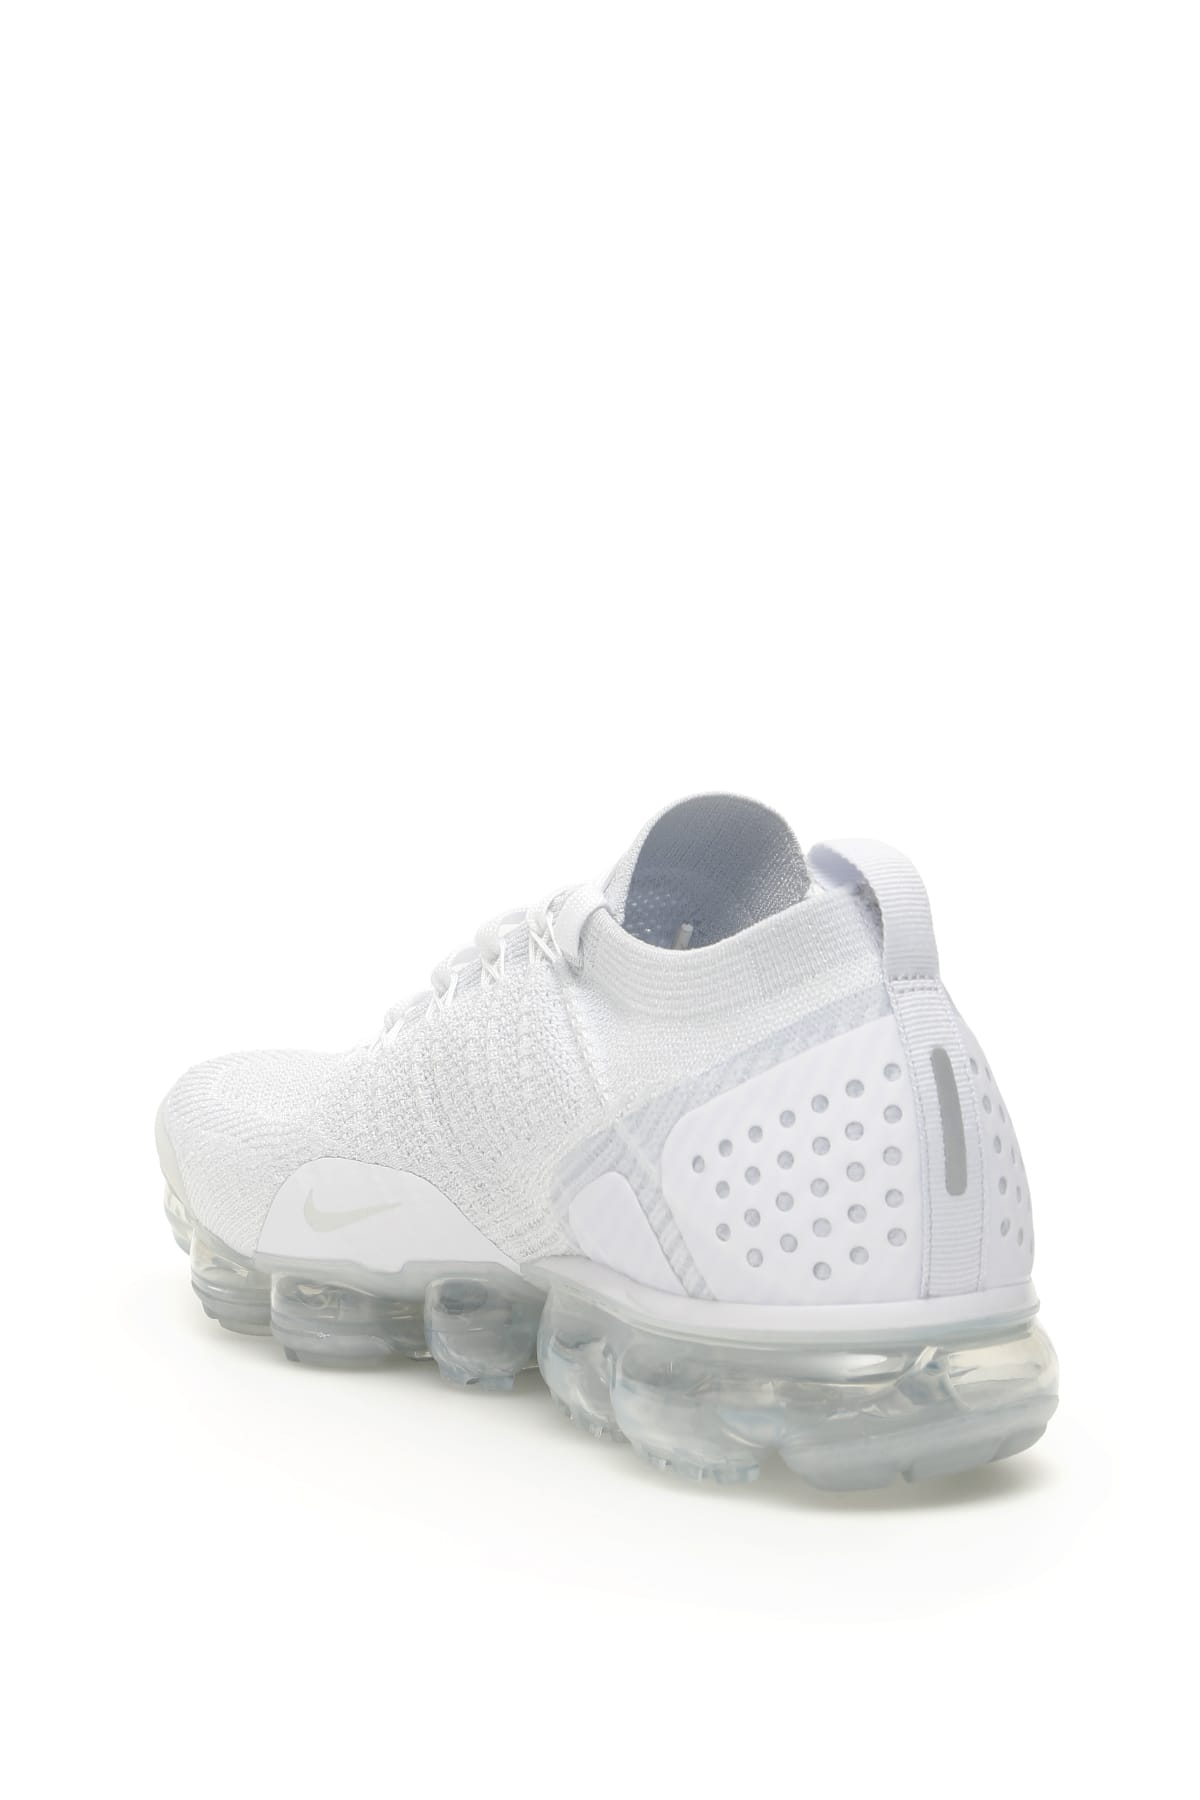 new product 40f2a f2607 Nike Air Vapormax Flyknit 2 Sneakers